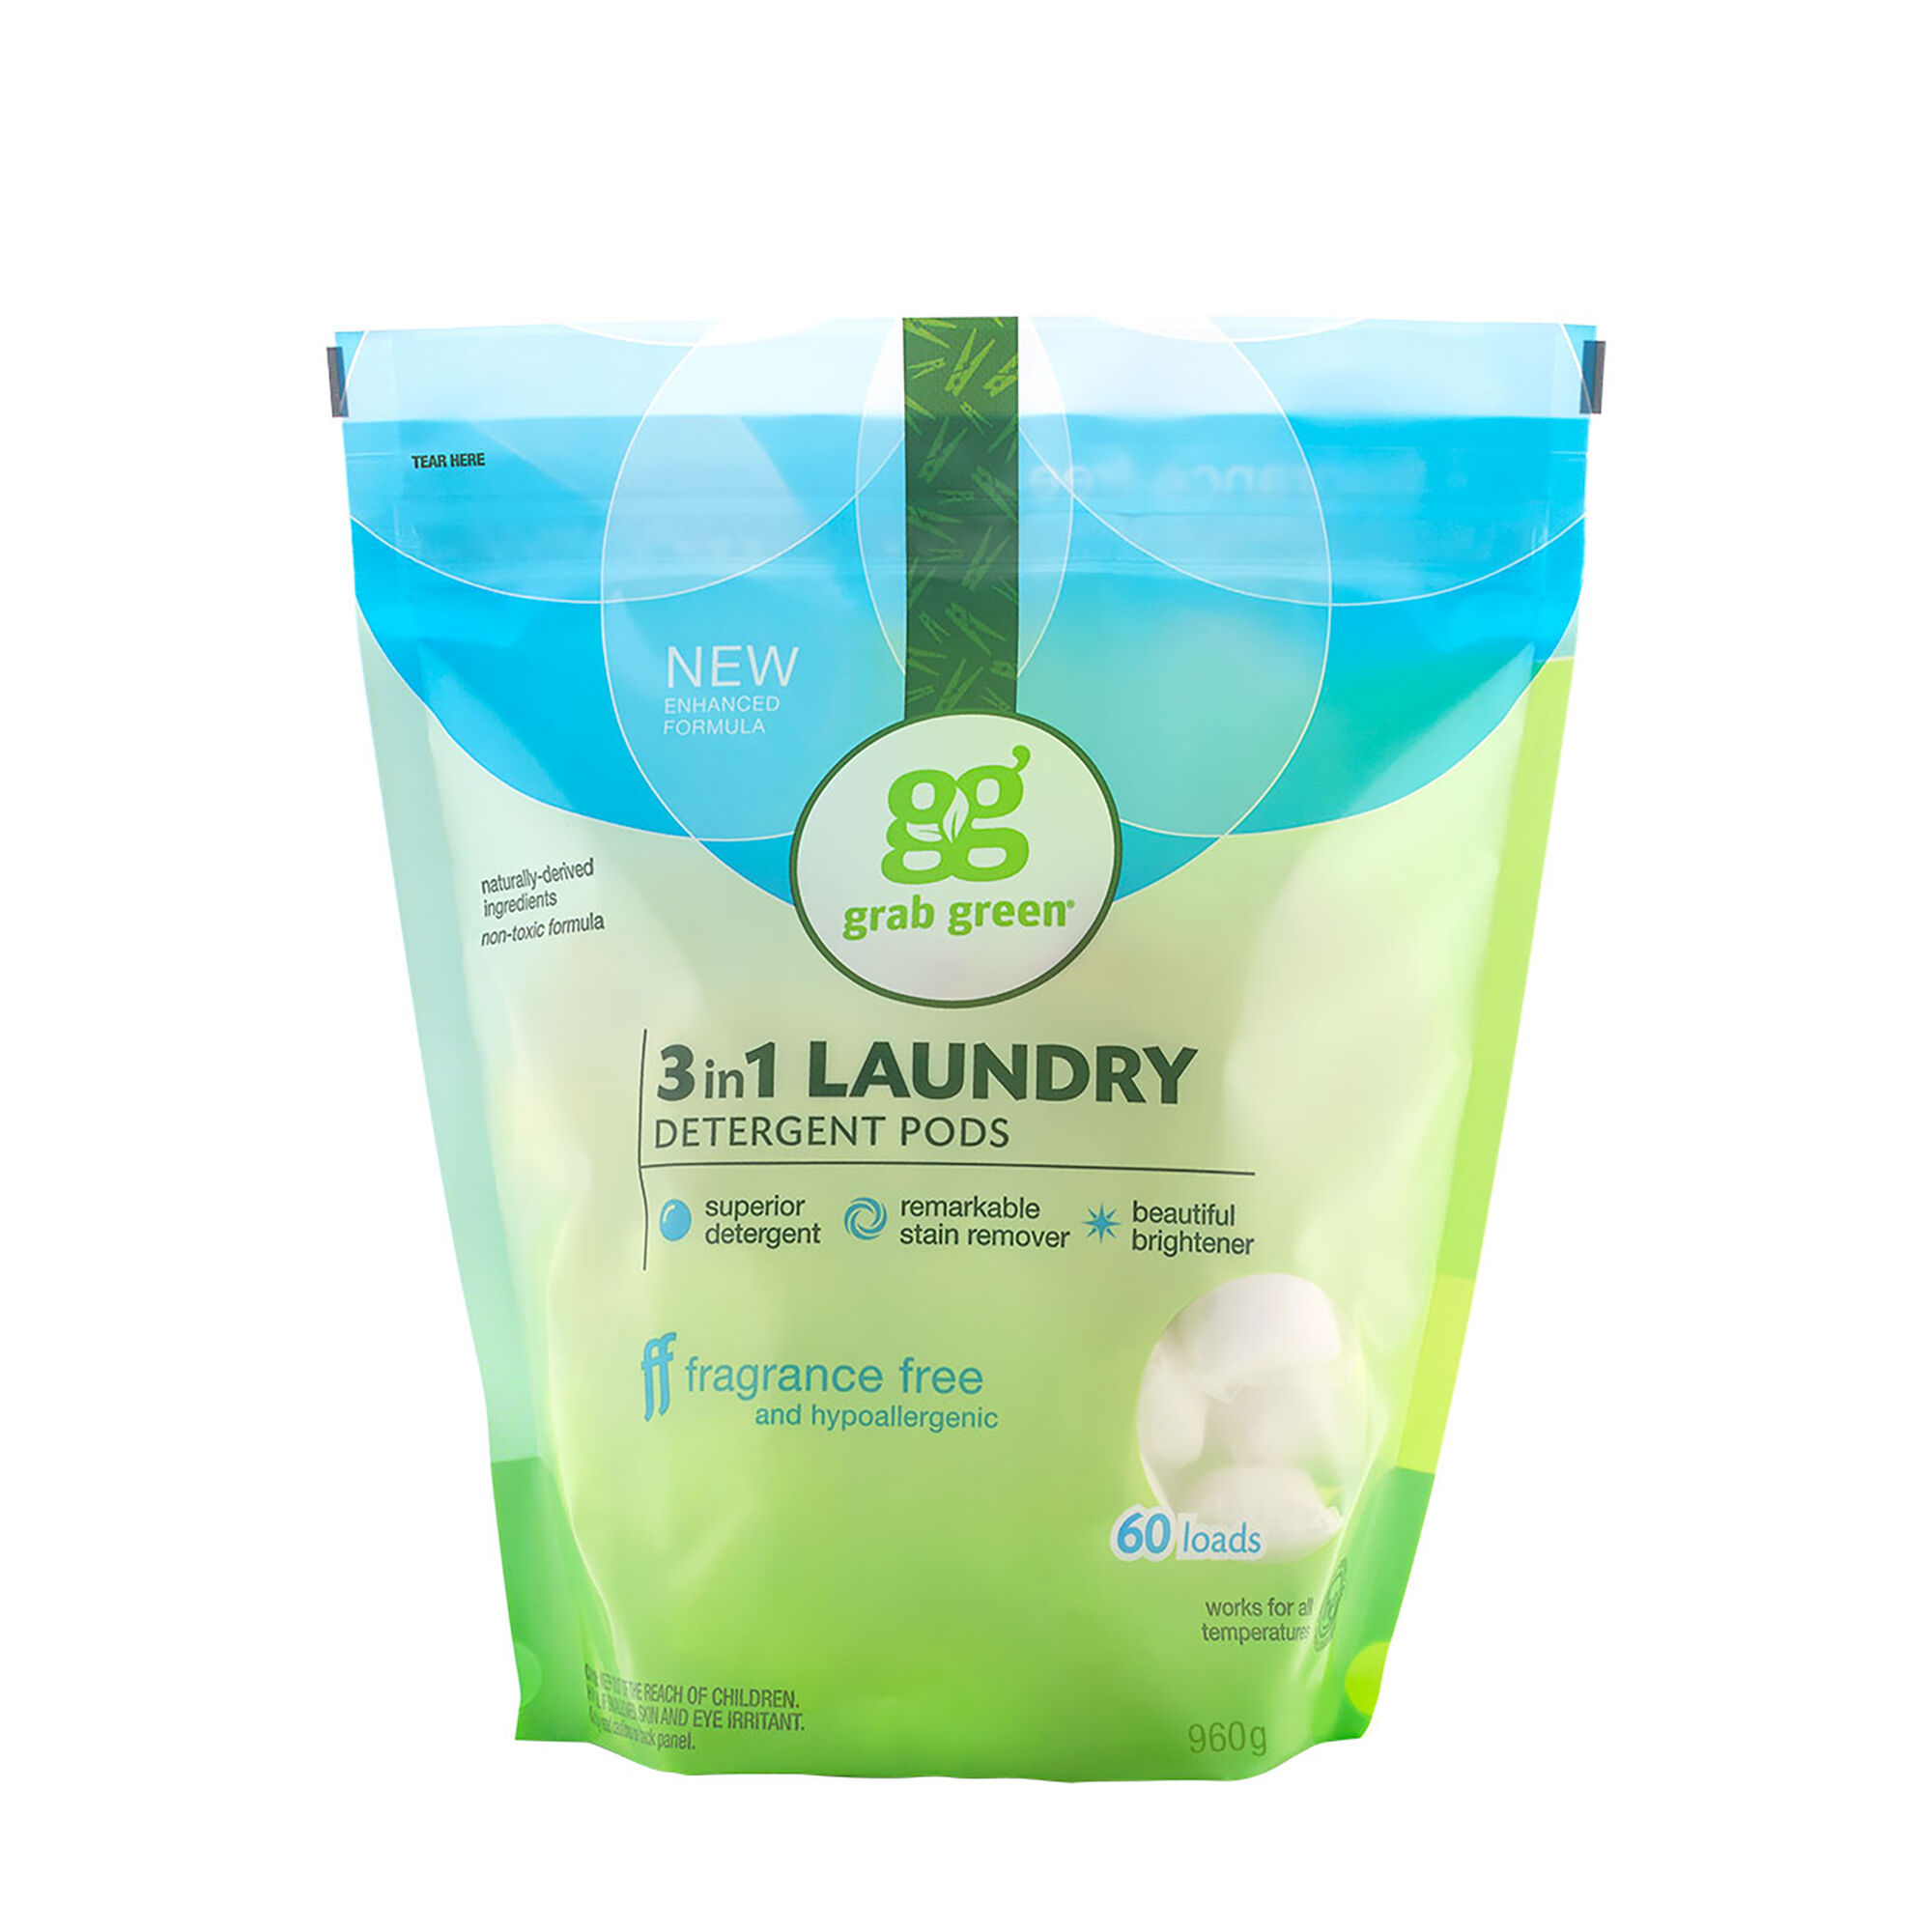 3 In 1 Laundry Detergent Pods Fragrance Free 60 Loads Grab GreenNatural Cleaning Products